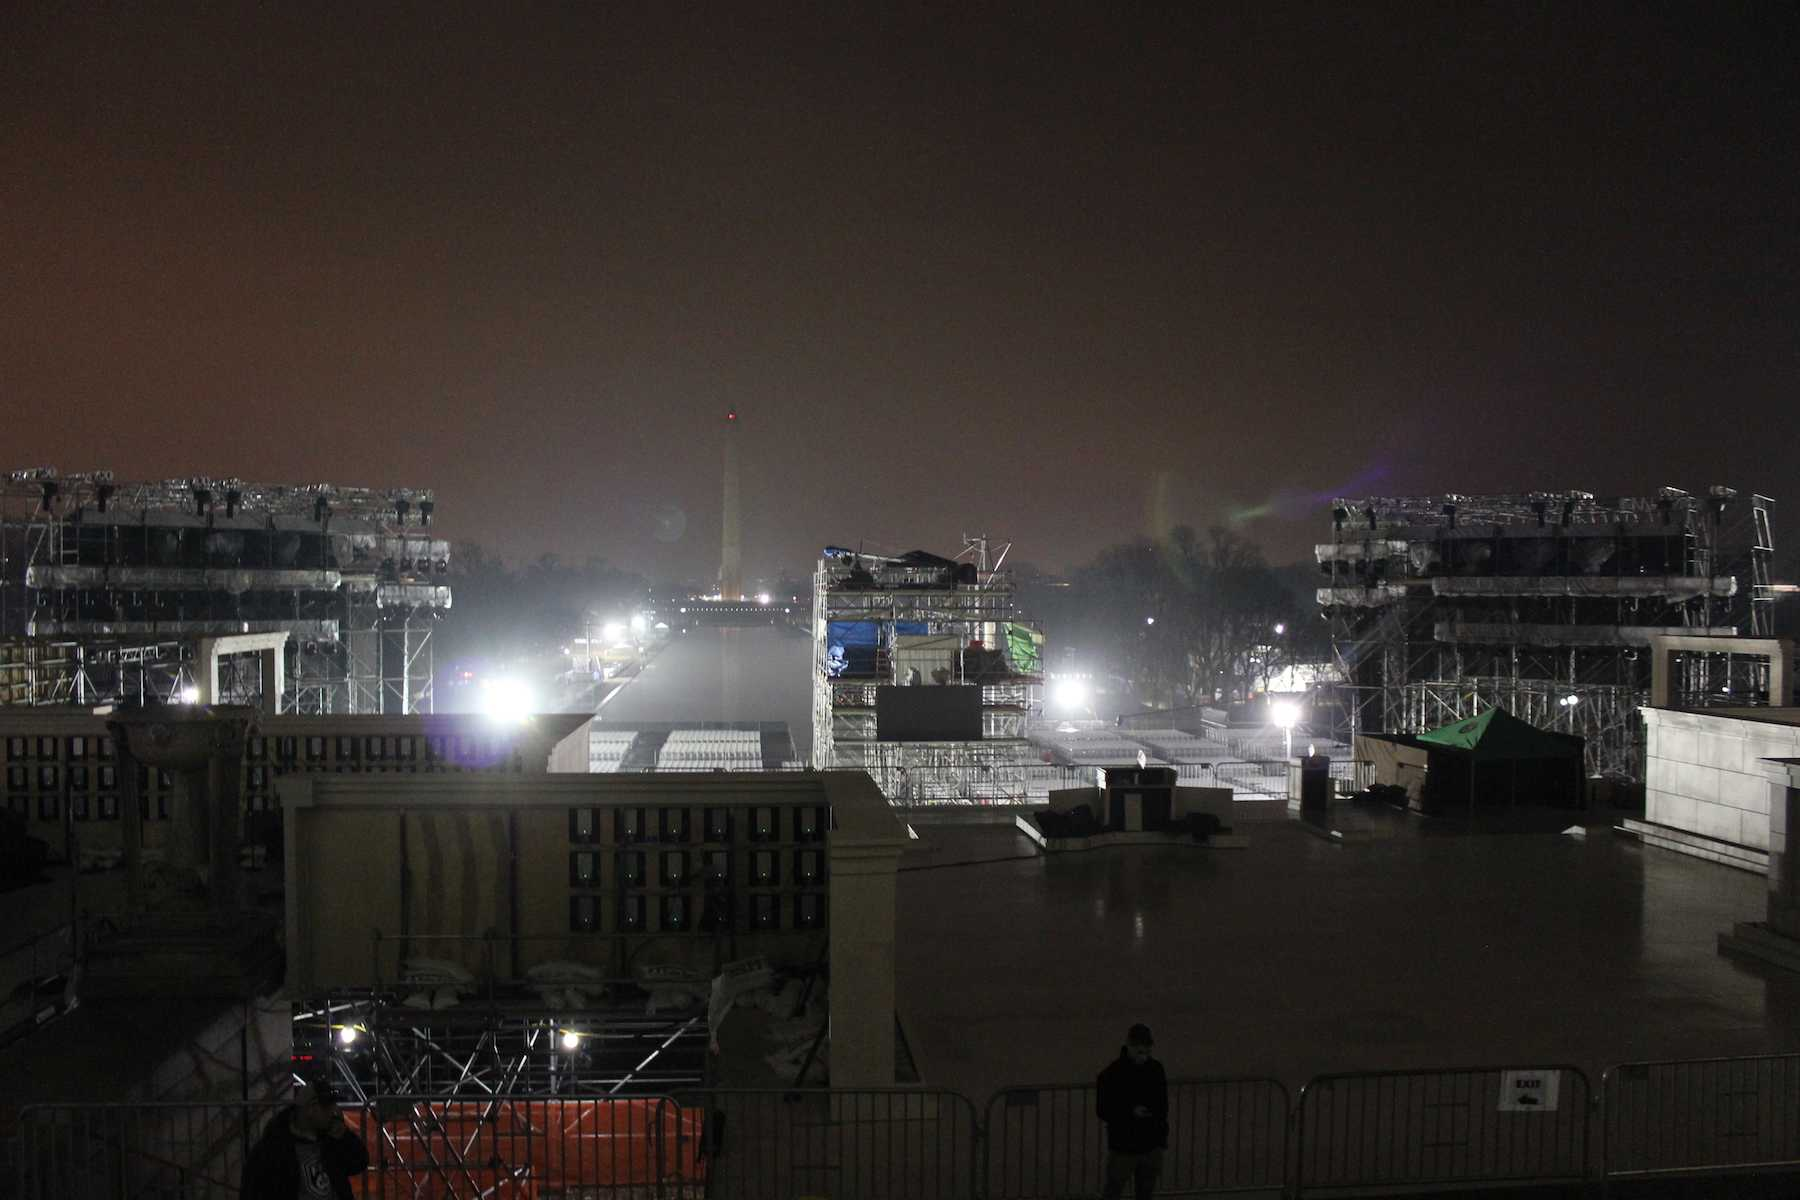 From+the+steps+of+the+Lincoln+Memorial%2C+looking+out+on+the+National+Mall+and+Inaugural+Stage.+